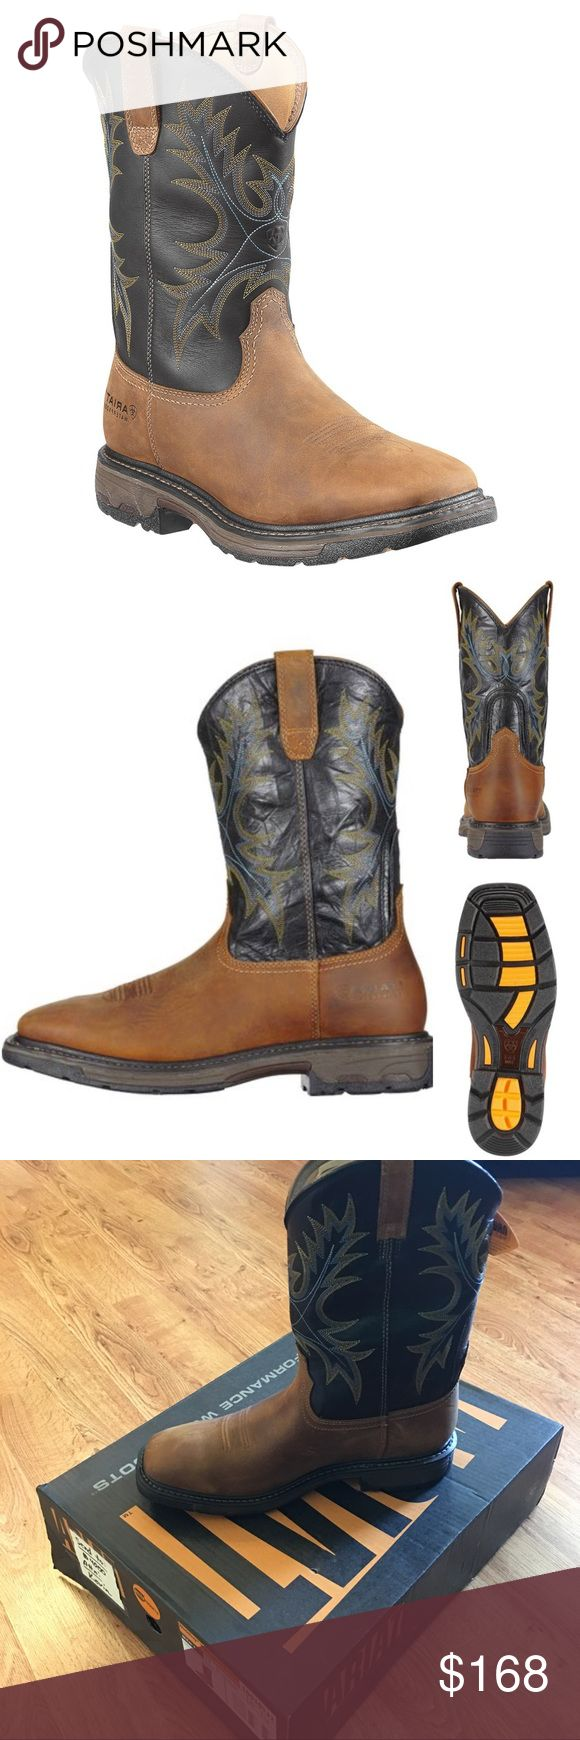 Ariat Workhog Waterproof Work Boots - Square Toe NEW!!! Premium work boots by Ariat. Full grain waterproof leather construction. Self-cleaning & non-tracking outsole tread design. Oil-resistant Duratread soles outlast traditional soles, offer superior traction, & provide max energy return. U-Turn Entry System with hidden gore panel provides easy-on give for wide widths or high arches. Square toe profile. ASTM-rated electric hazard protection. Color is Aged Bark. Ariat Shoes